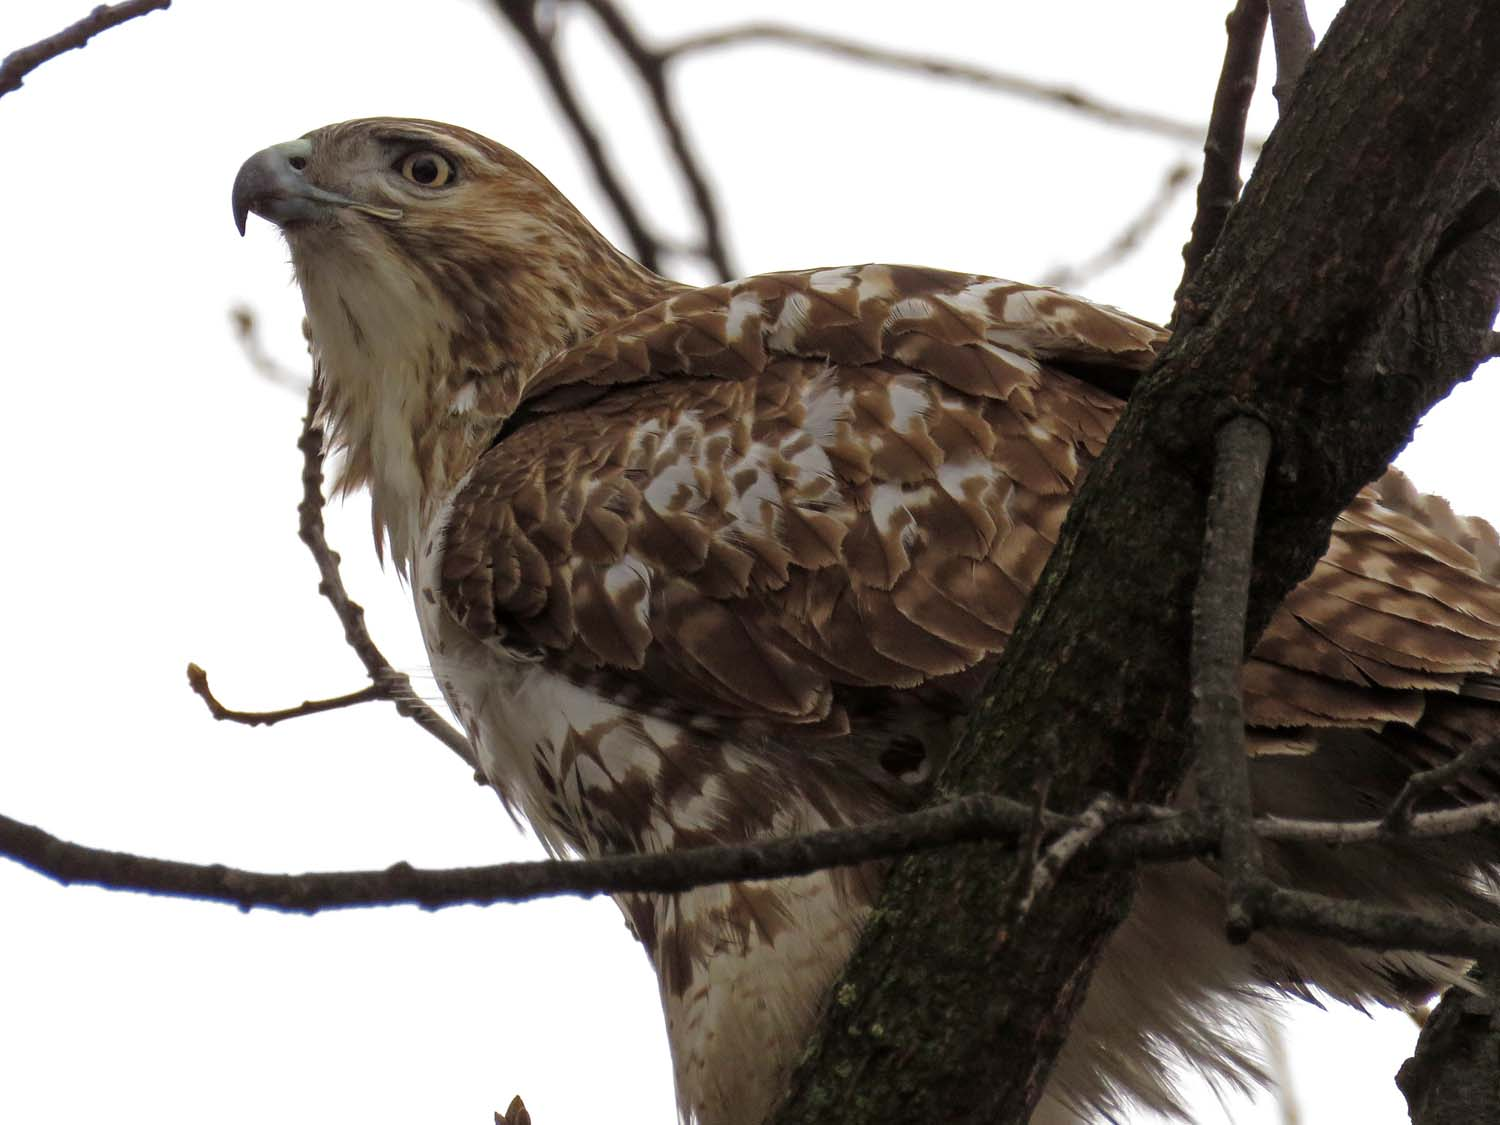 Juvenile red-tailed hawk, Central Park, January 17